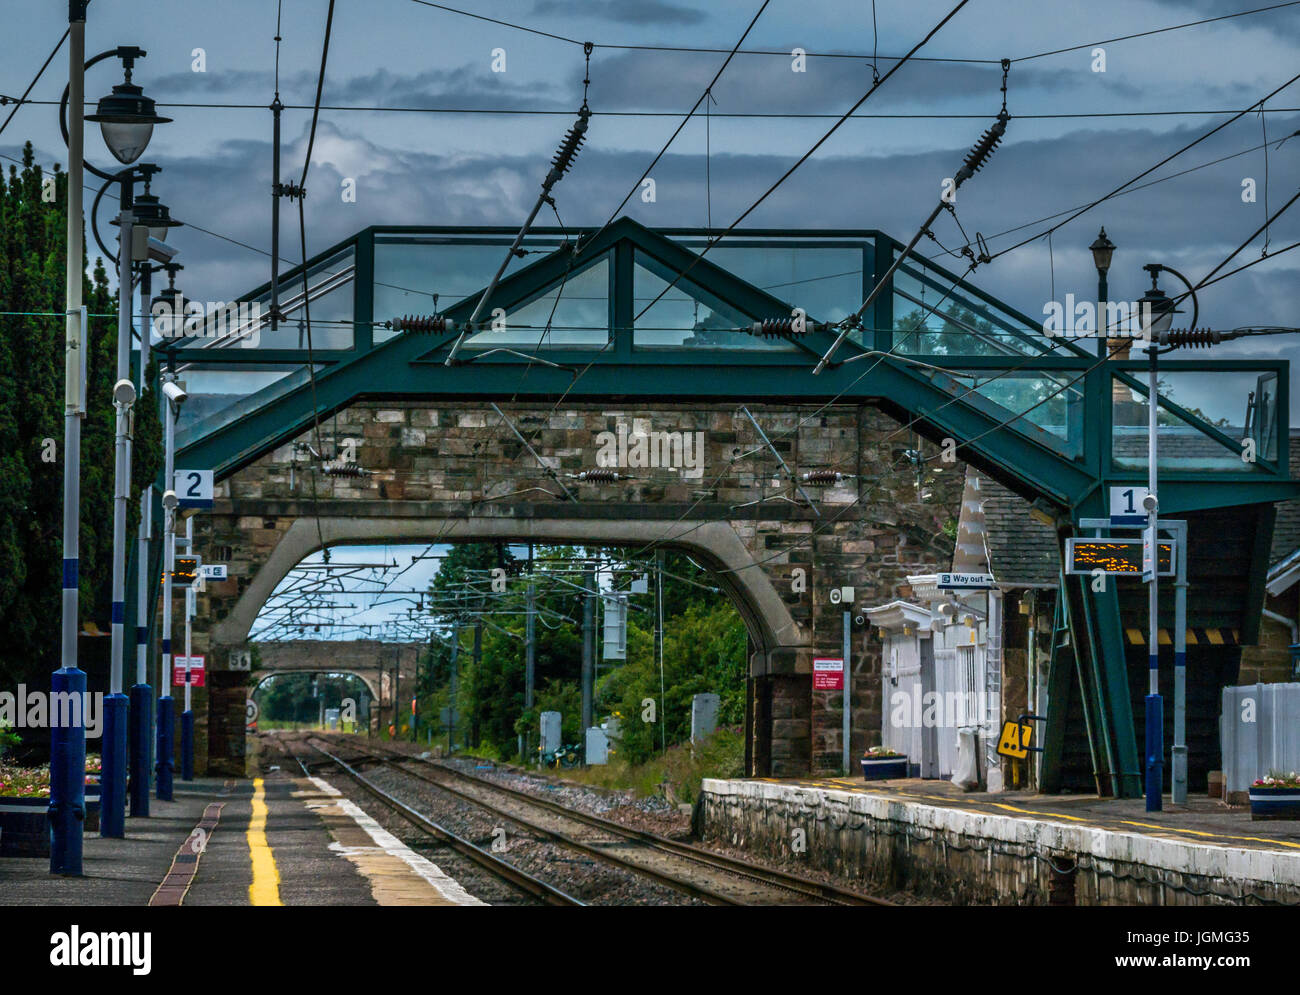 Looking through small stone bridge along railway train tracks, Drem train station, East Lothian, Scotland, UK - Stock Image